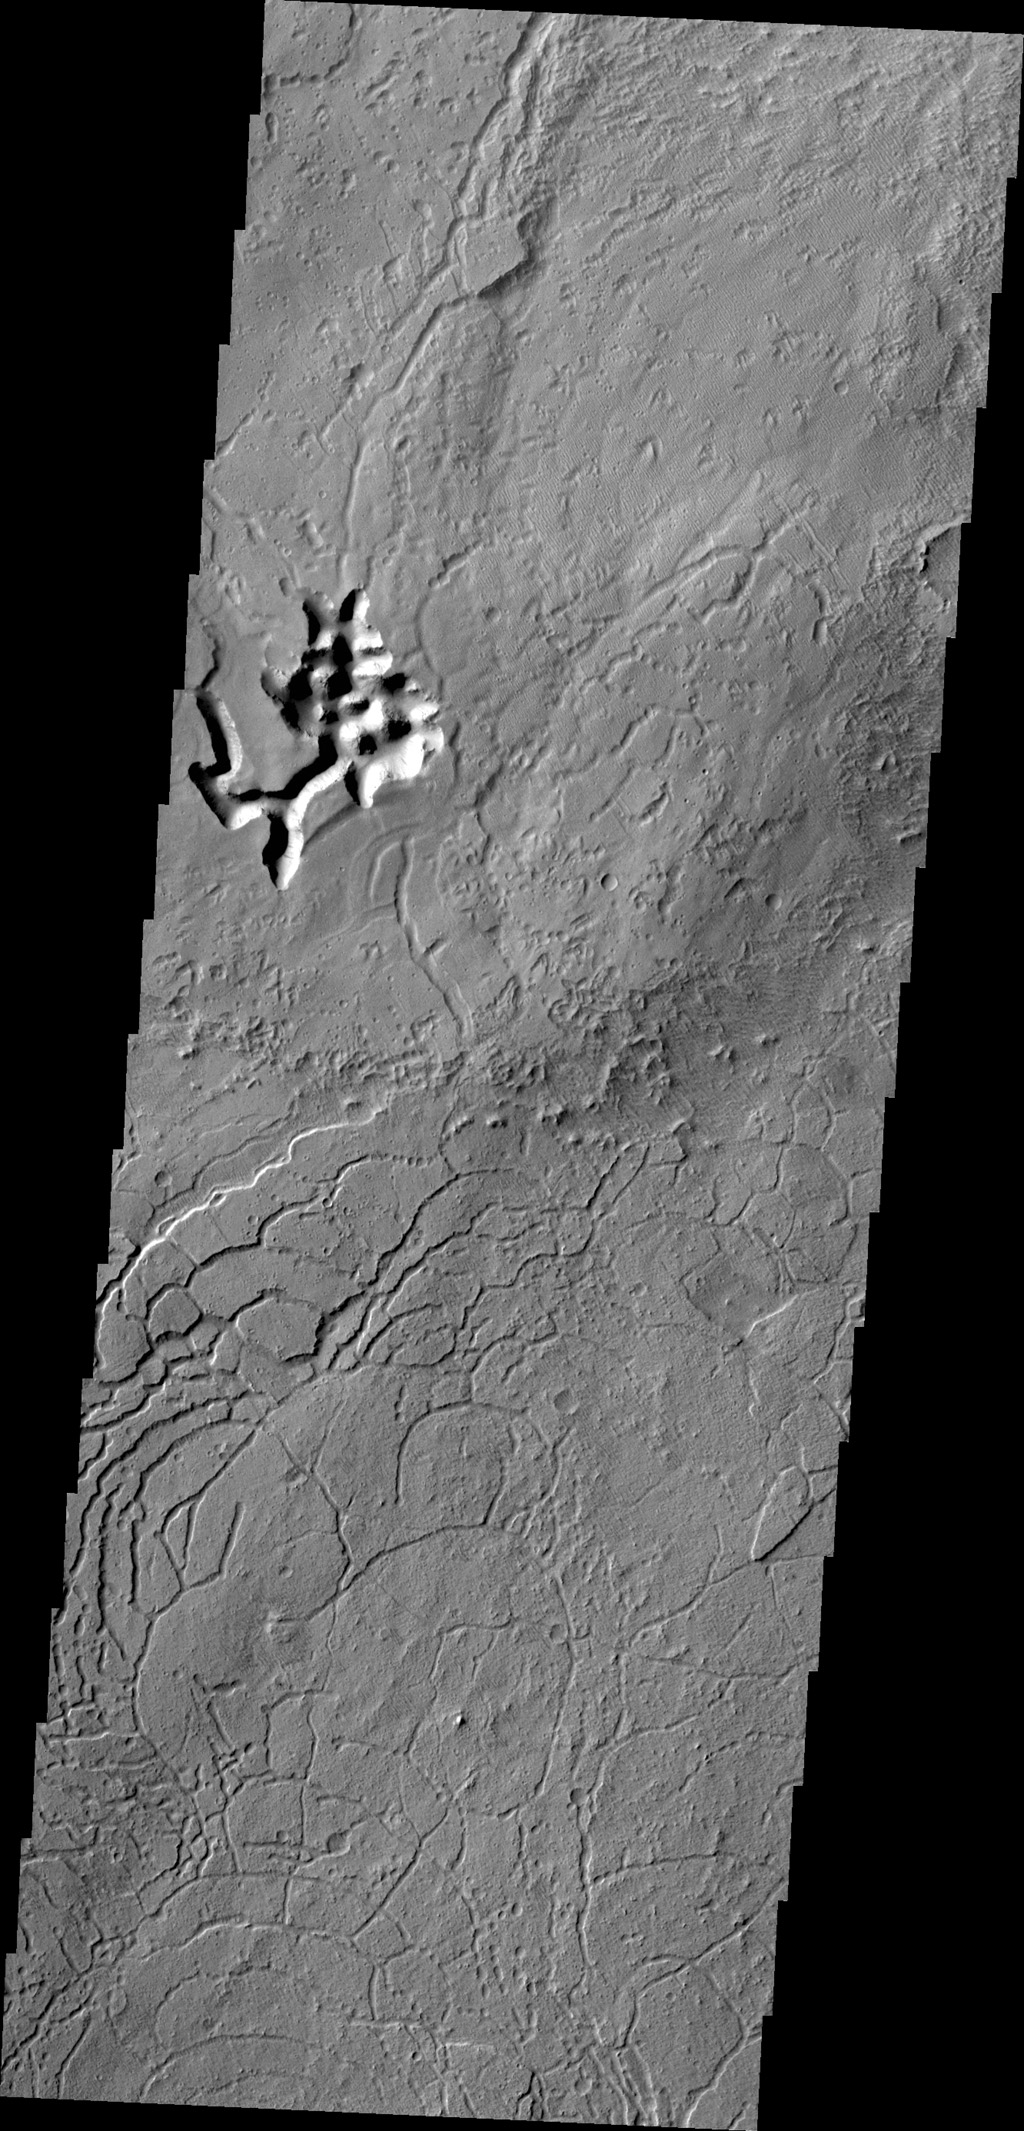 Arcuate fractures are a common feature in this region south of Avernus Colles. This image is from NASA's 2001 Mars Odyssey spacecraft.